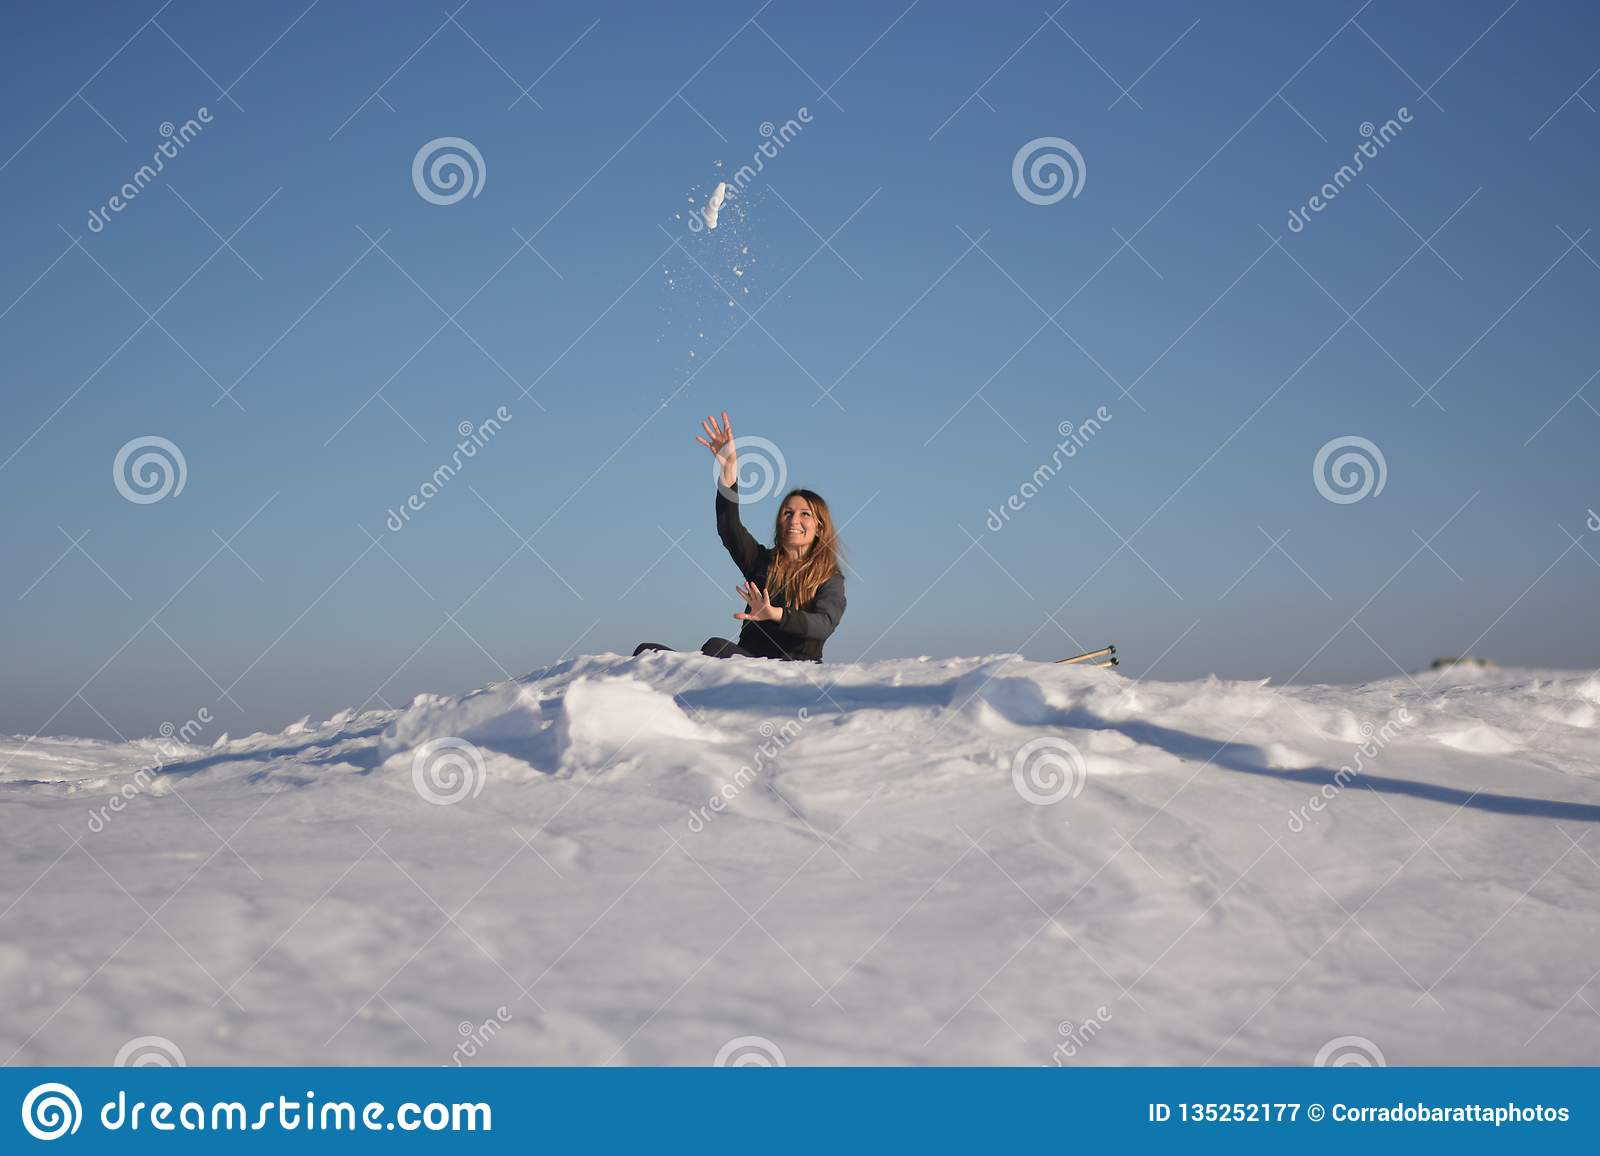 Driven By Winter Wind >> The Girl Plays Pulling Snowballs From Behind A Wind Driven Dune